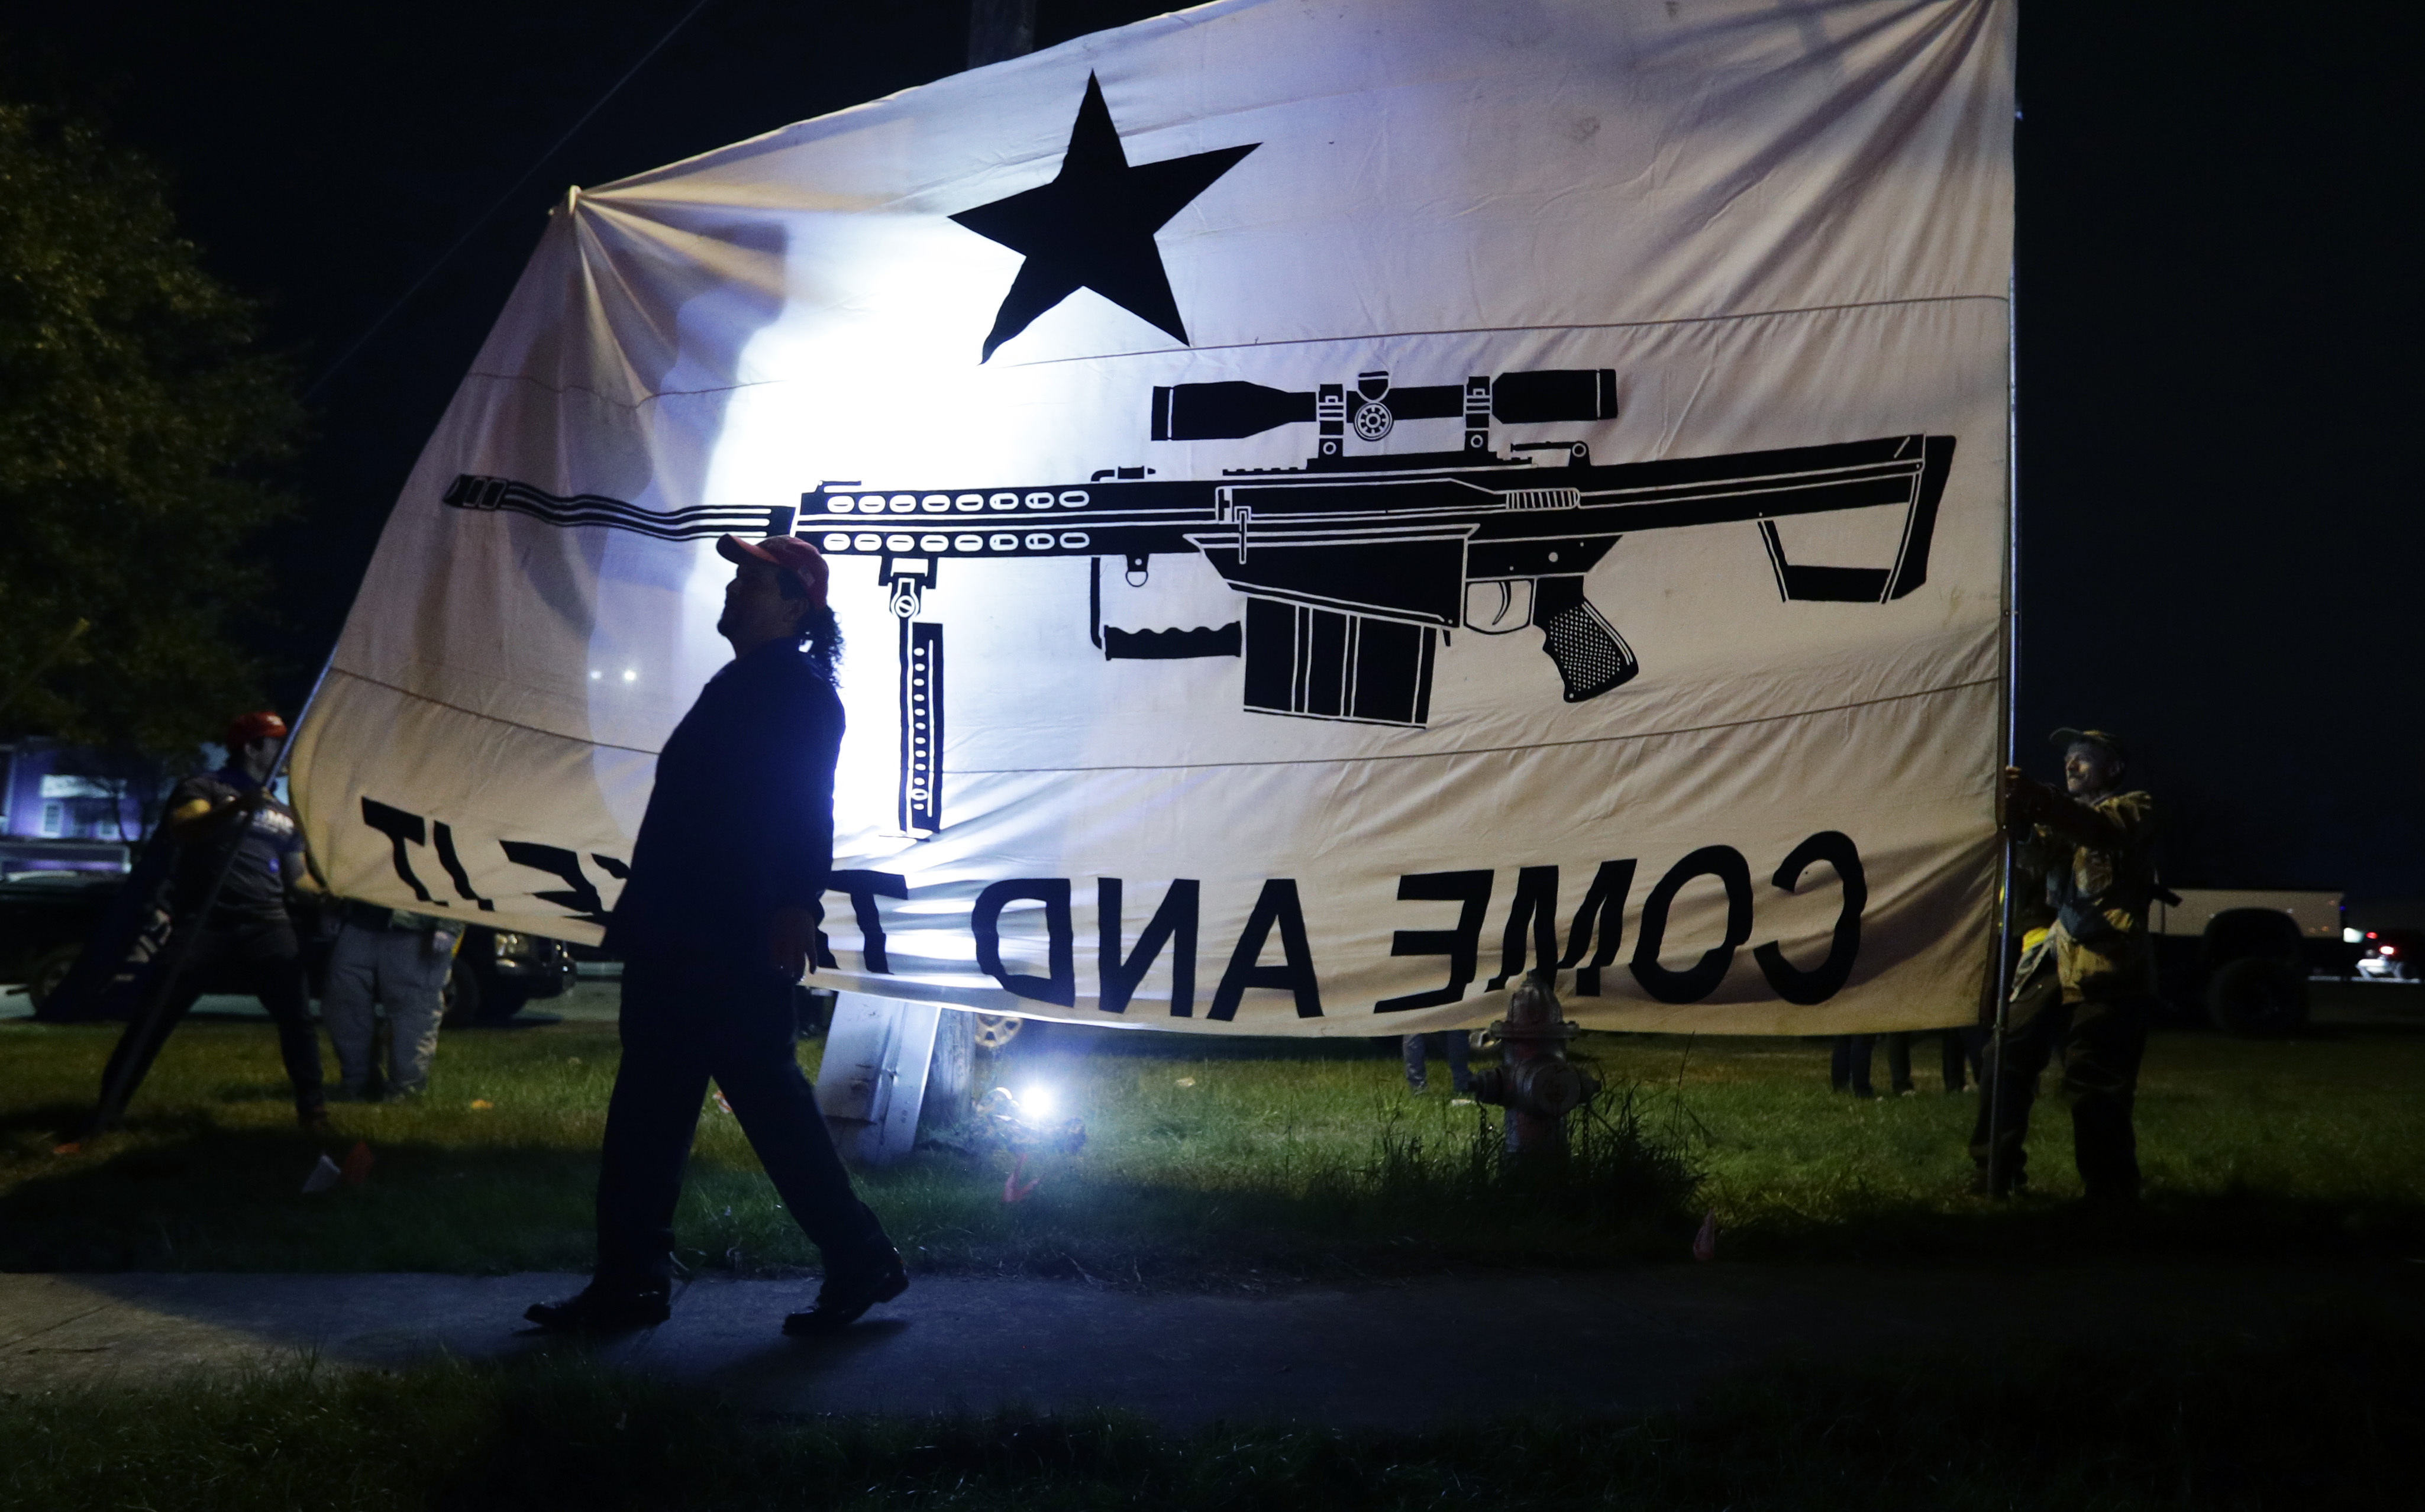 Supporters of President Donald Trump hold flags and banners outside of a campaign event for Democratic presidential candidate Sen. Bernie Sanders in San Antonio, Saturday, Feb. 22, 2020. (AP Photo/Eric Gay)